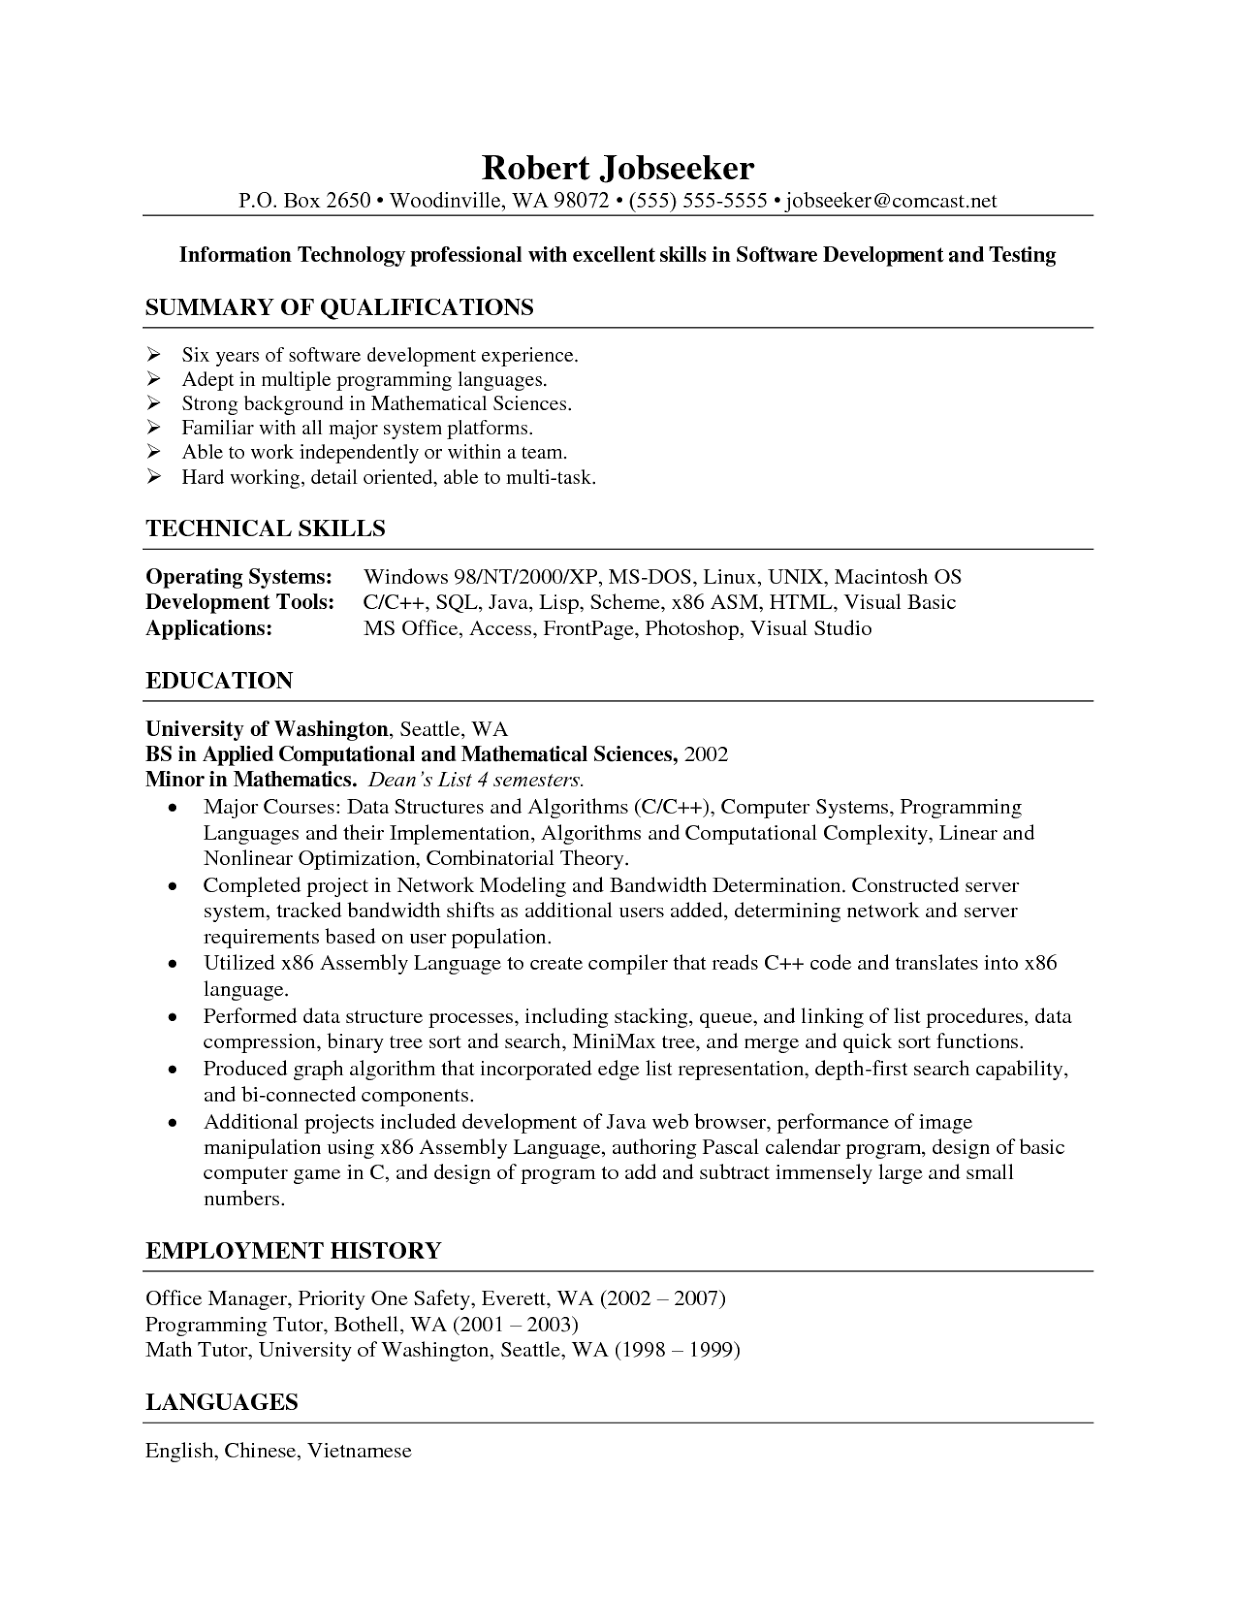 cover letter and resume are attached email cover letter resume attached sample follow email after submitting resume norcrosshistorycenter chiropractic - Cover Letter For Submitting Resume